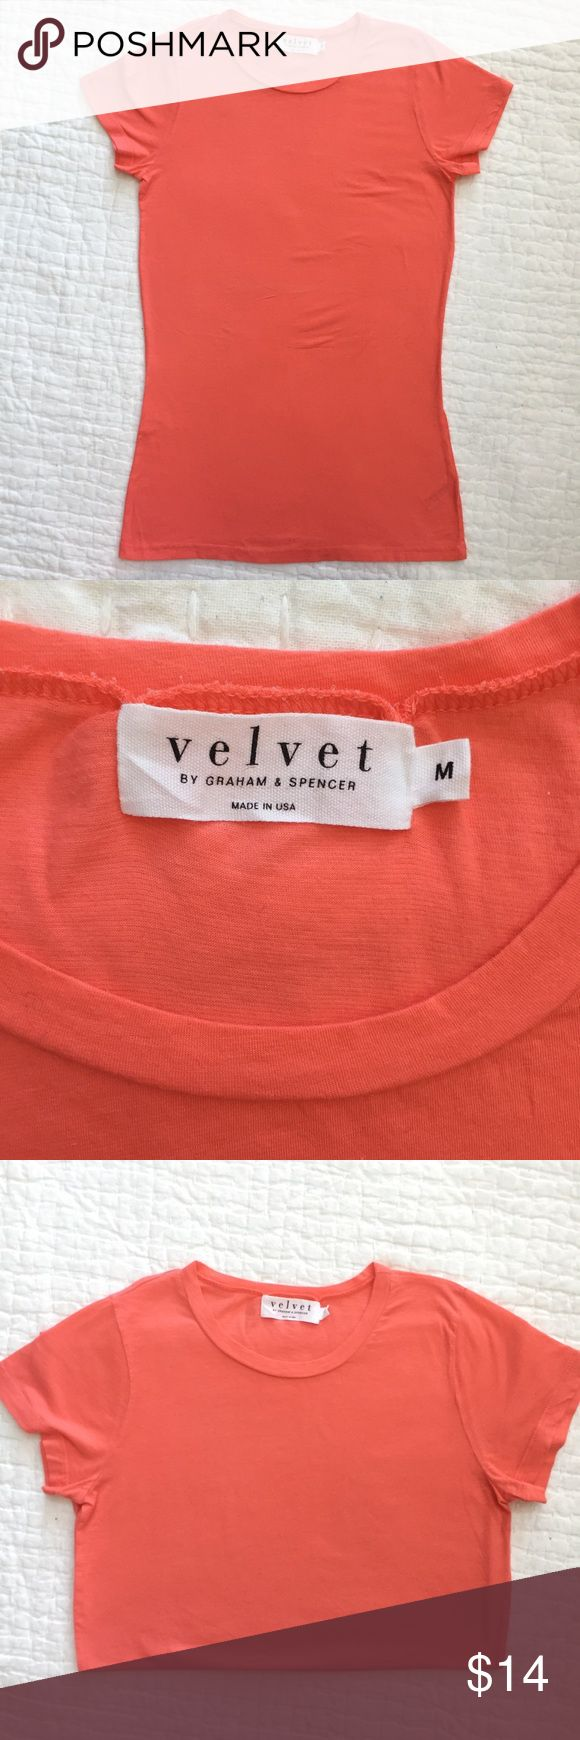 Velvet Tee by Graham & Spencer. Size M Velvet Tee by Graham & Spencer. Size M. Excellent condition. Retail : $65 Coral color Velvet Tops Tees - Short Sleeve